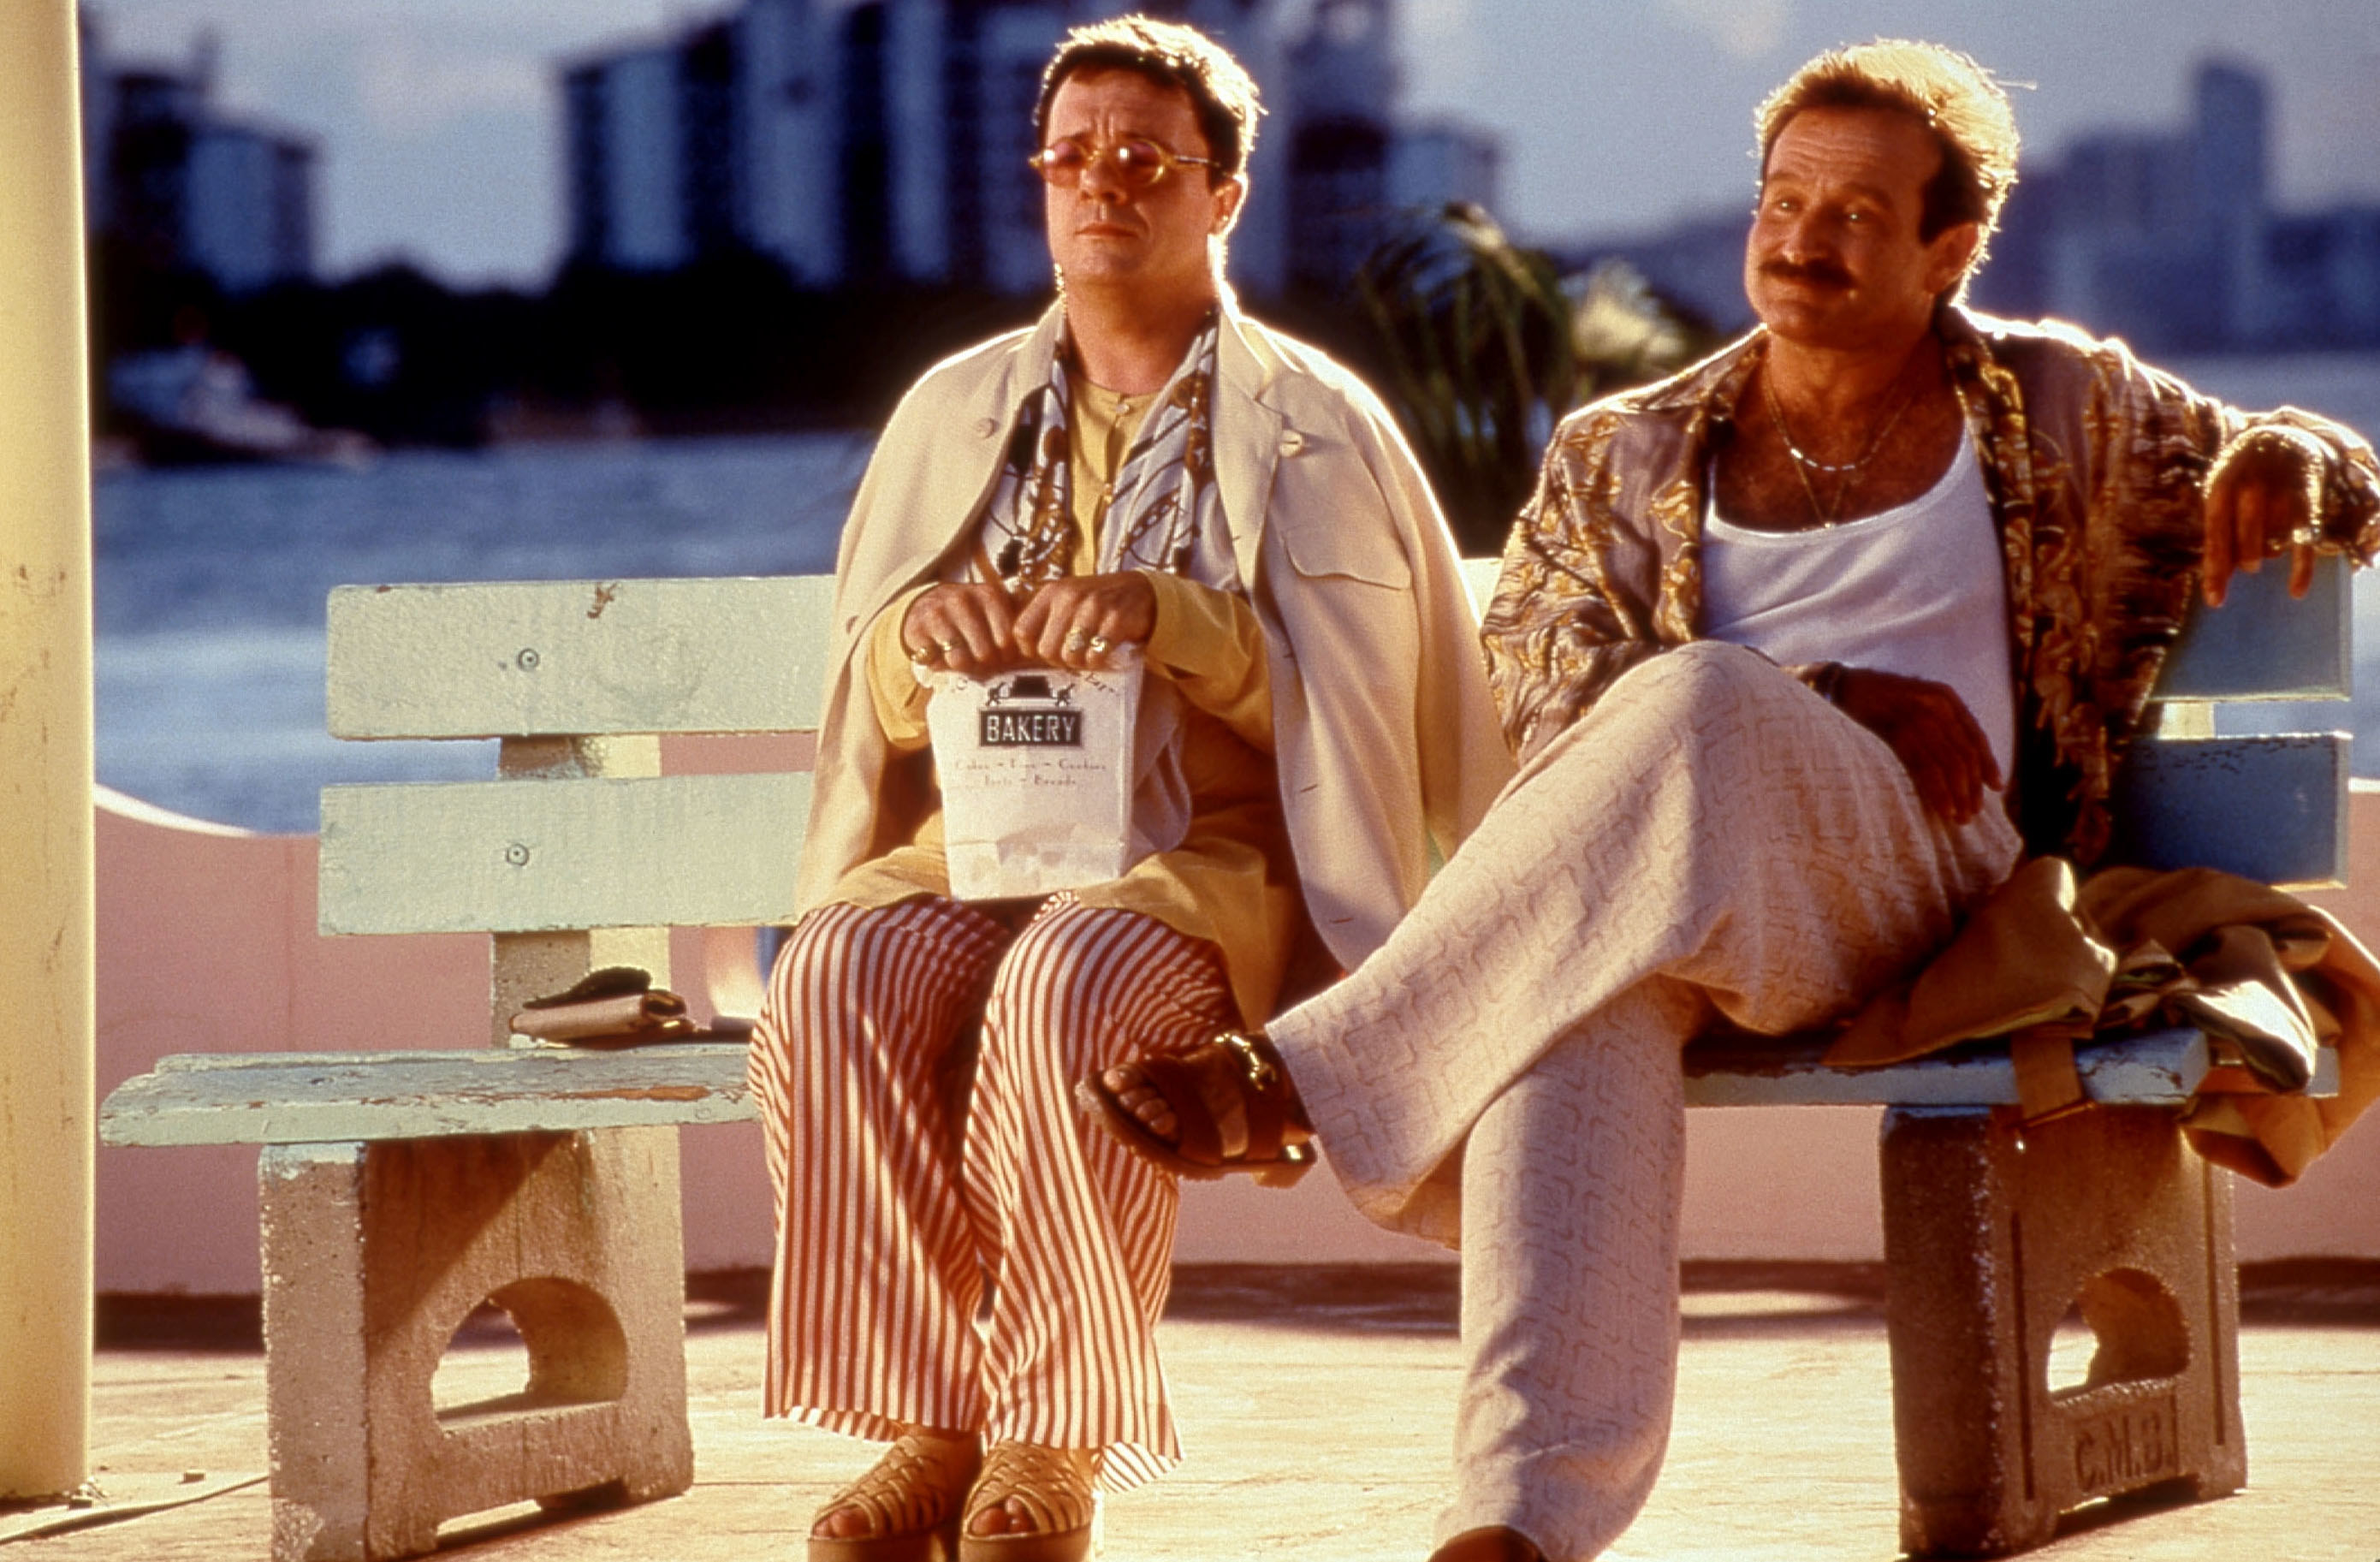 Nathan Lane and Robin Williams sit on a bench